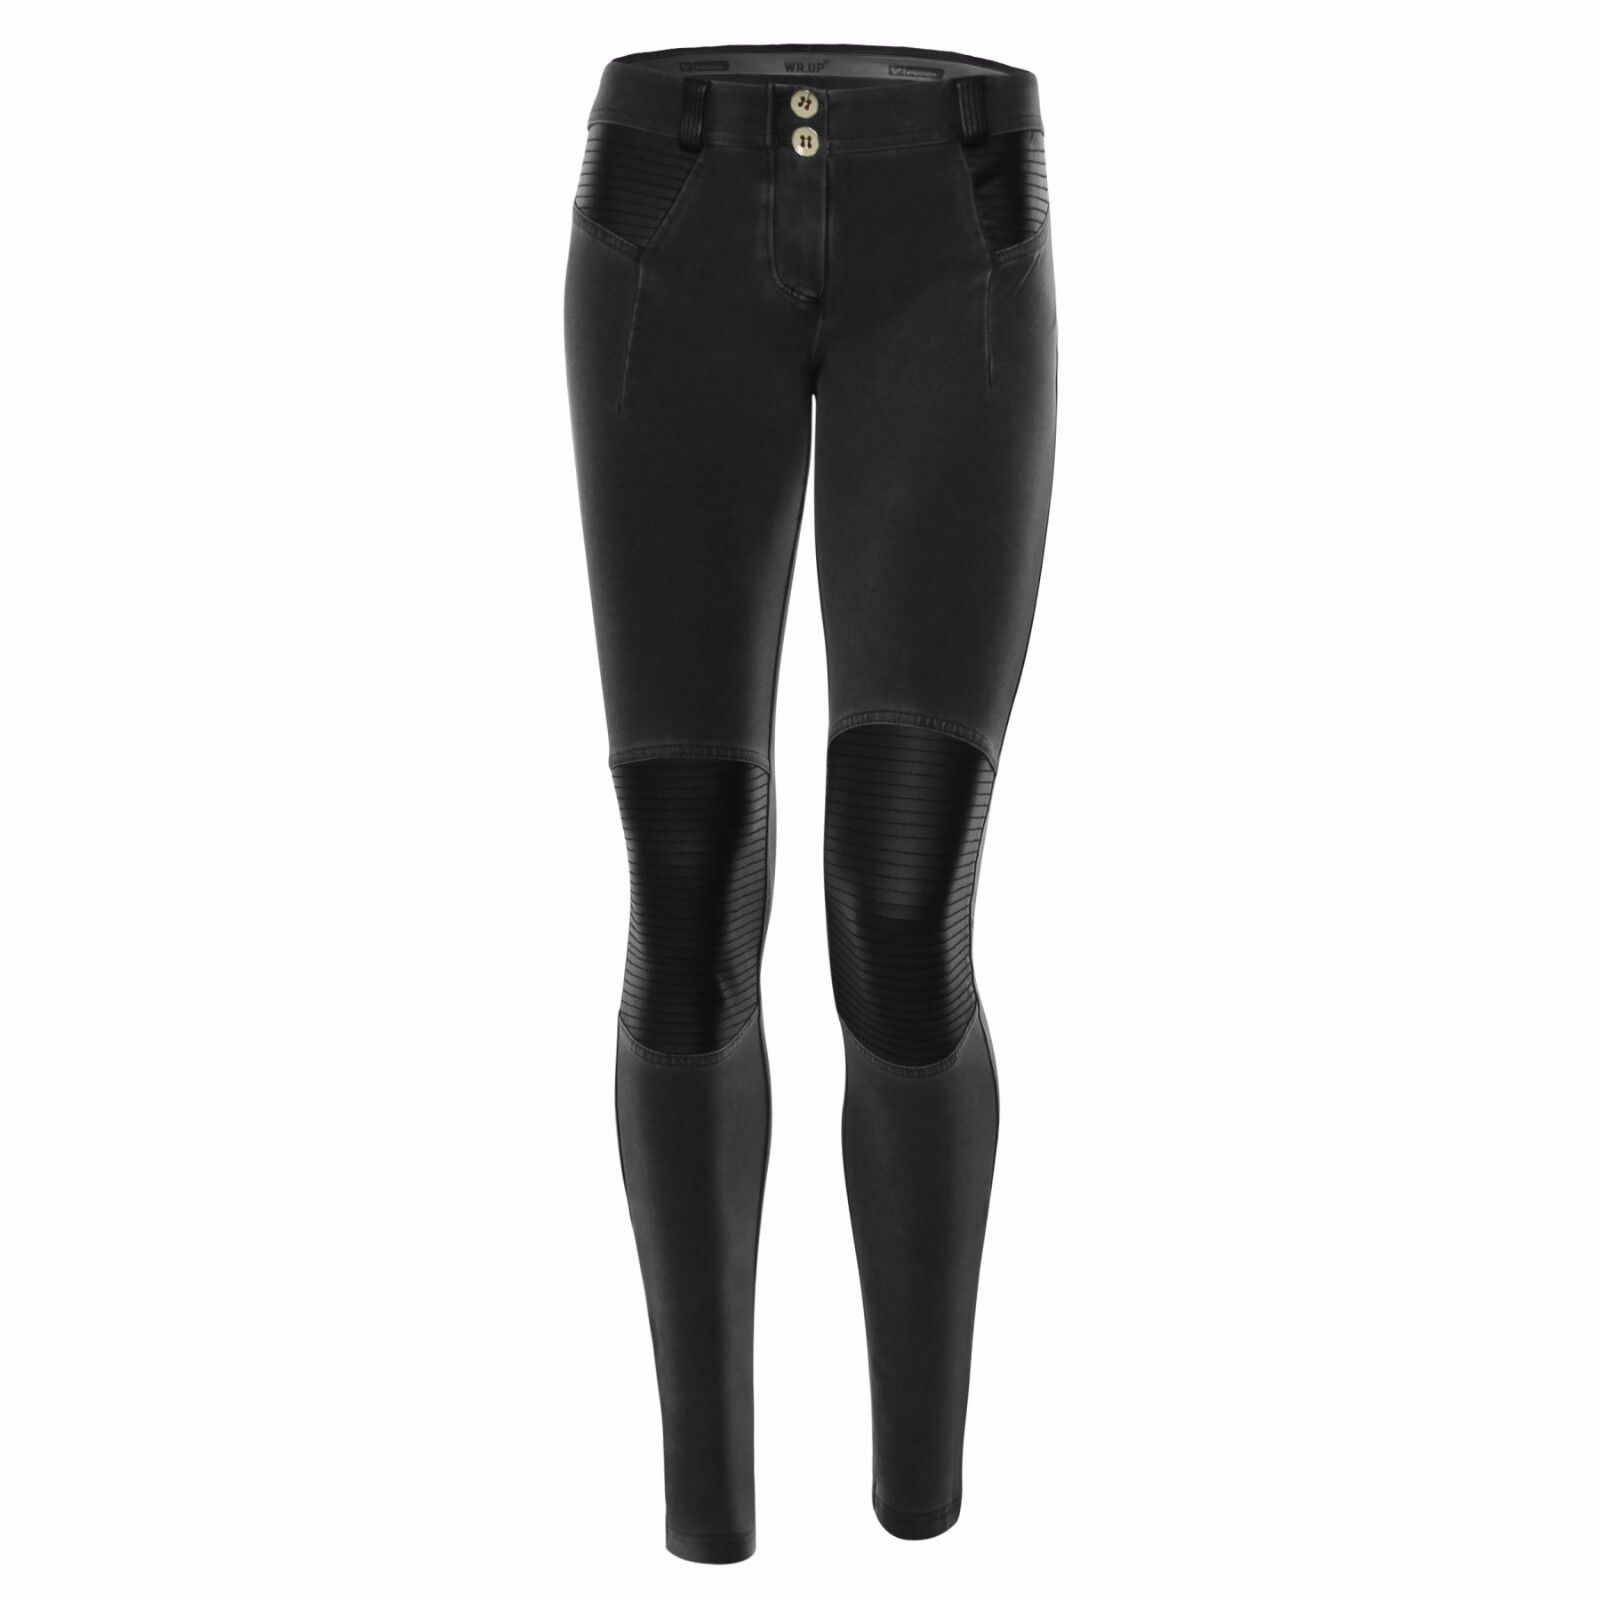 SCONTO 30% FREDDY WR.UP PANTALONI VITA BASSA PANTALONE PUSH UP WRUP1ALC06E